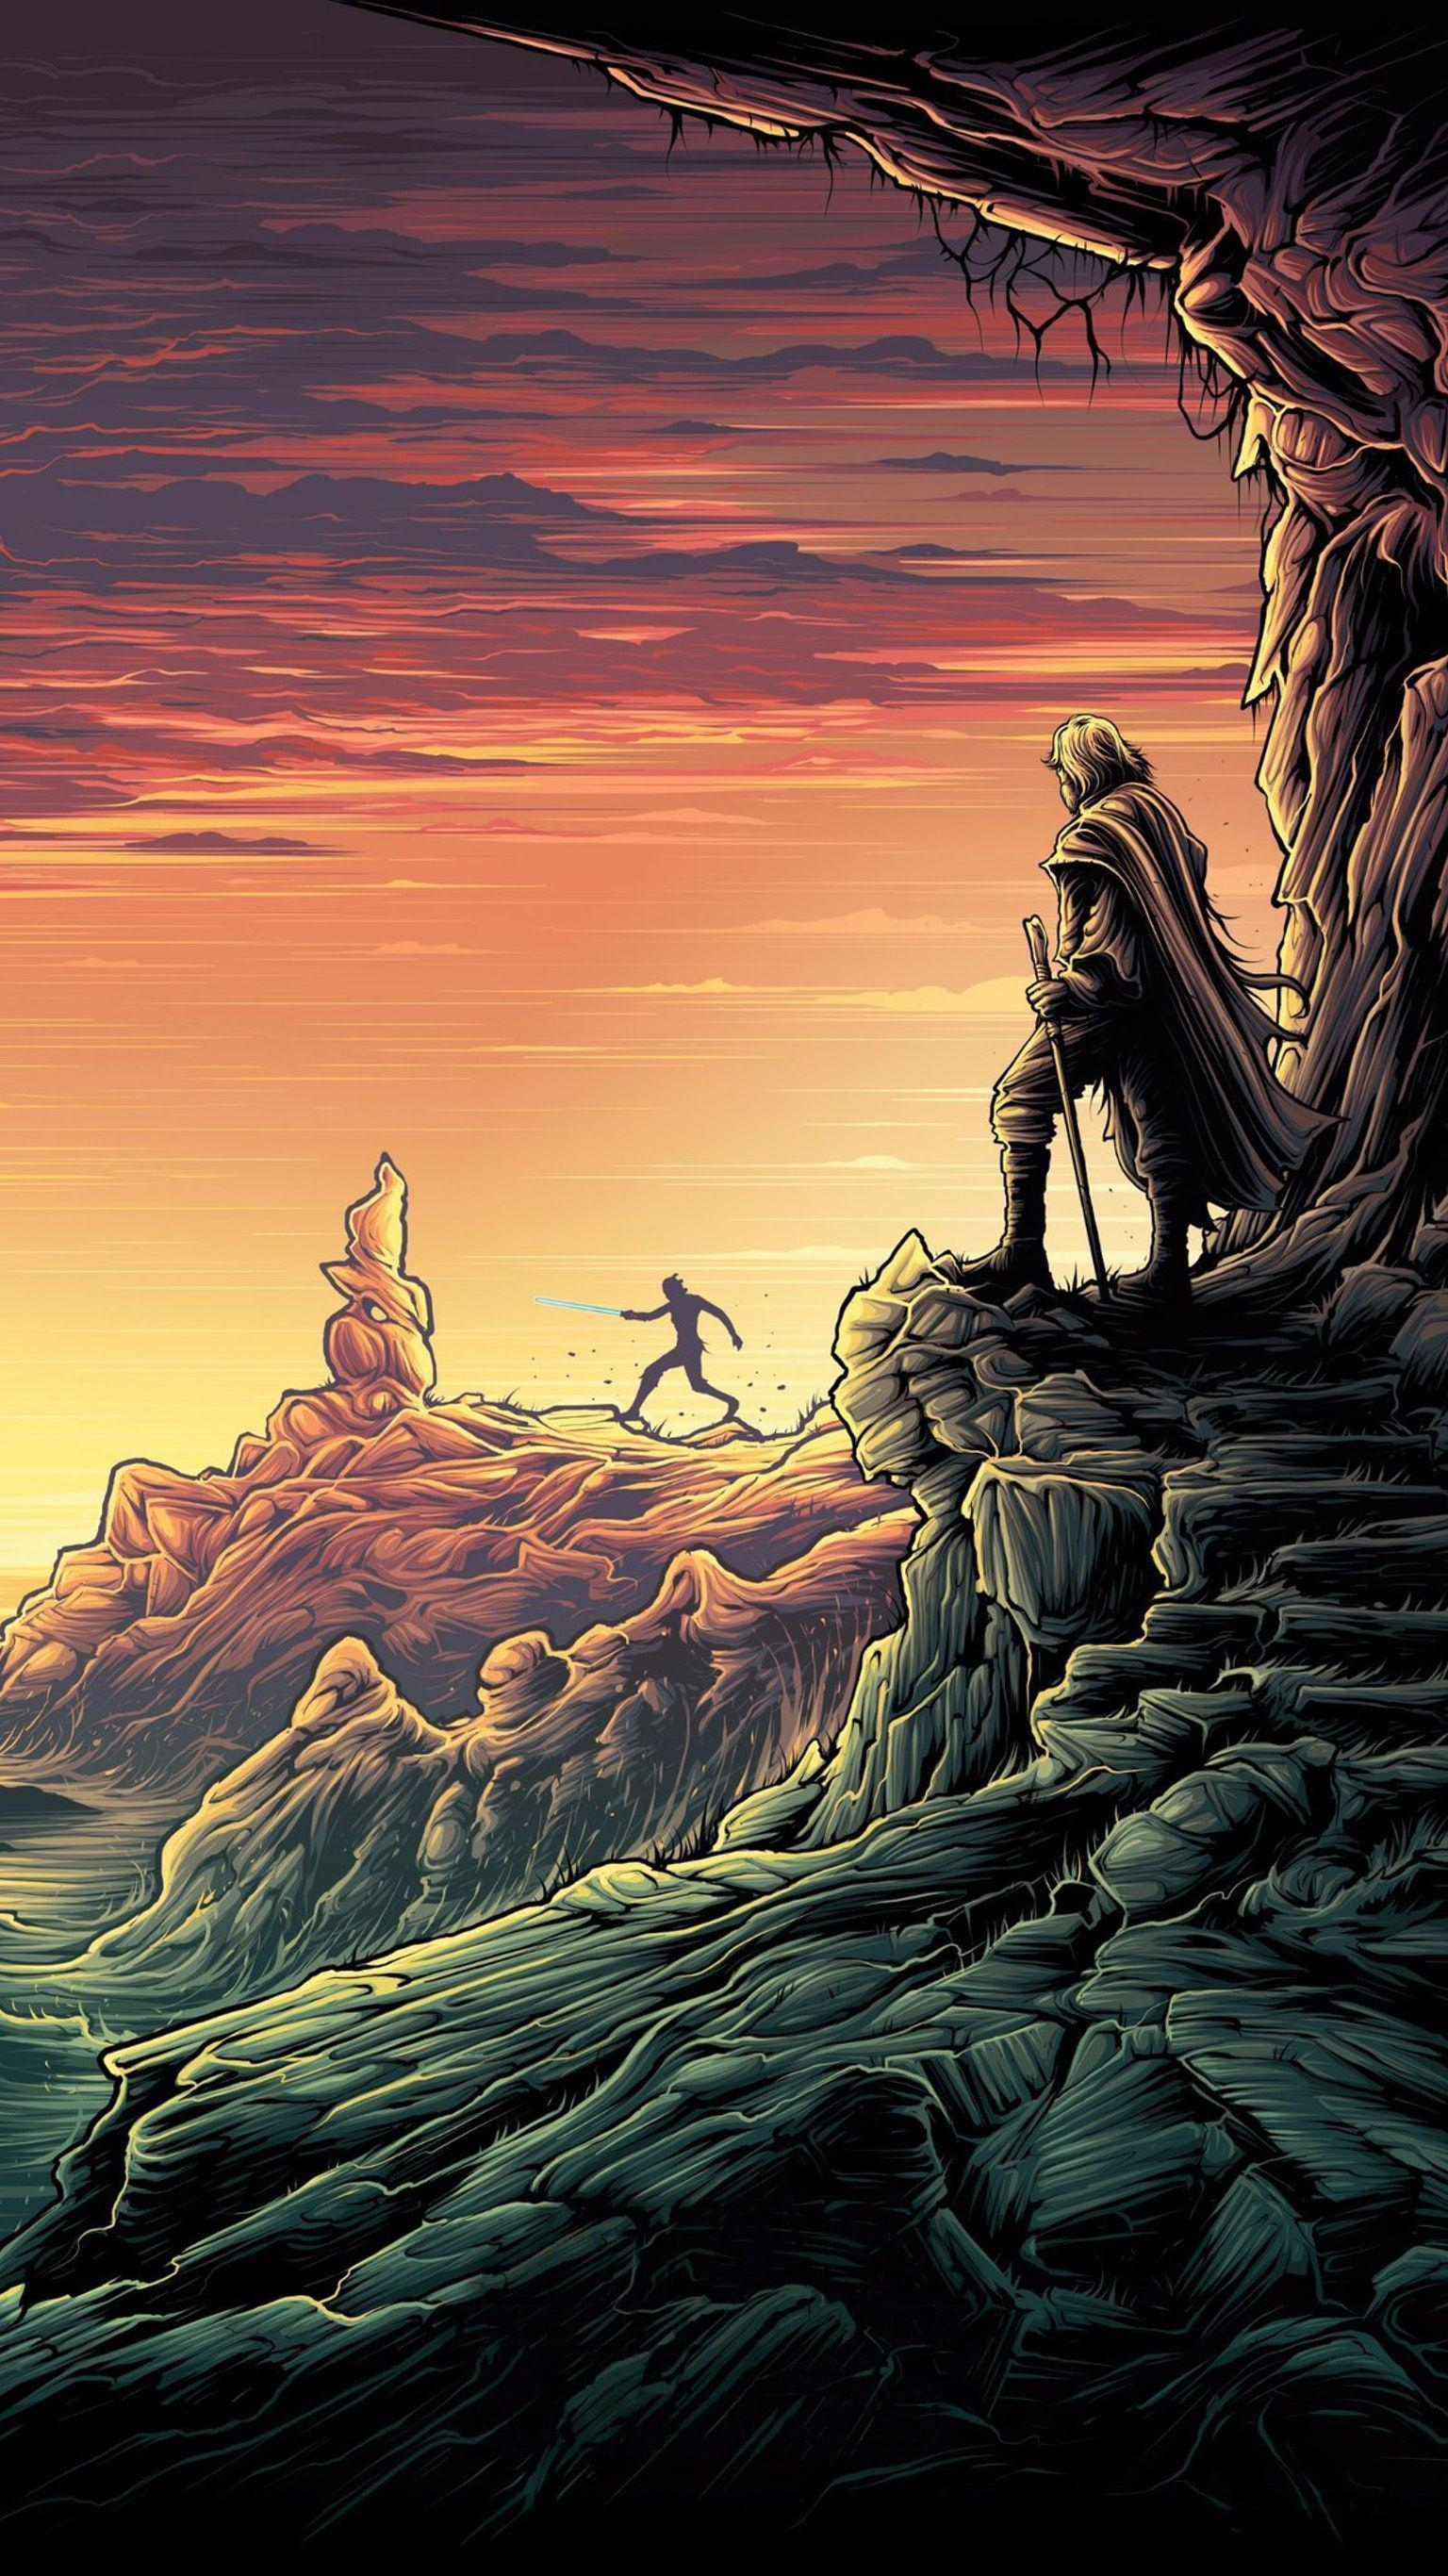 Awesome Dark Abstract Wallpapers Mobile Phone Hd Dan Mumford Star Wars Last Jedi 1536x2732 Wallpaper Teahub Io